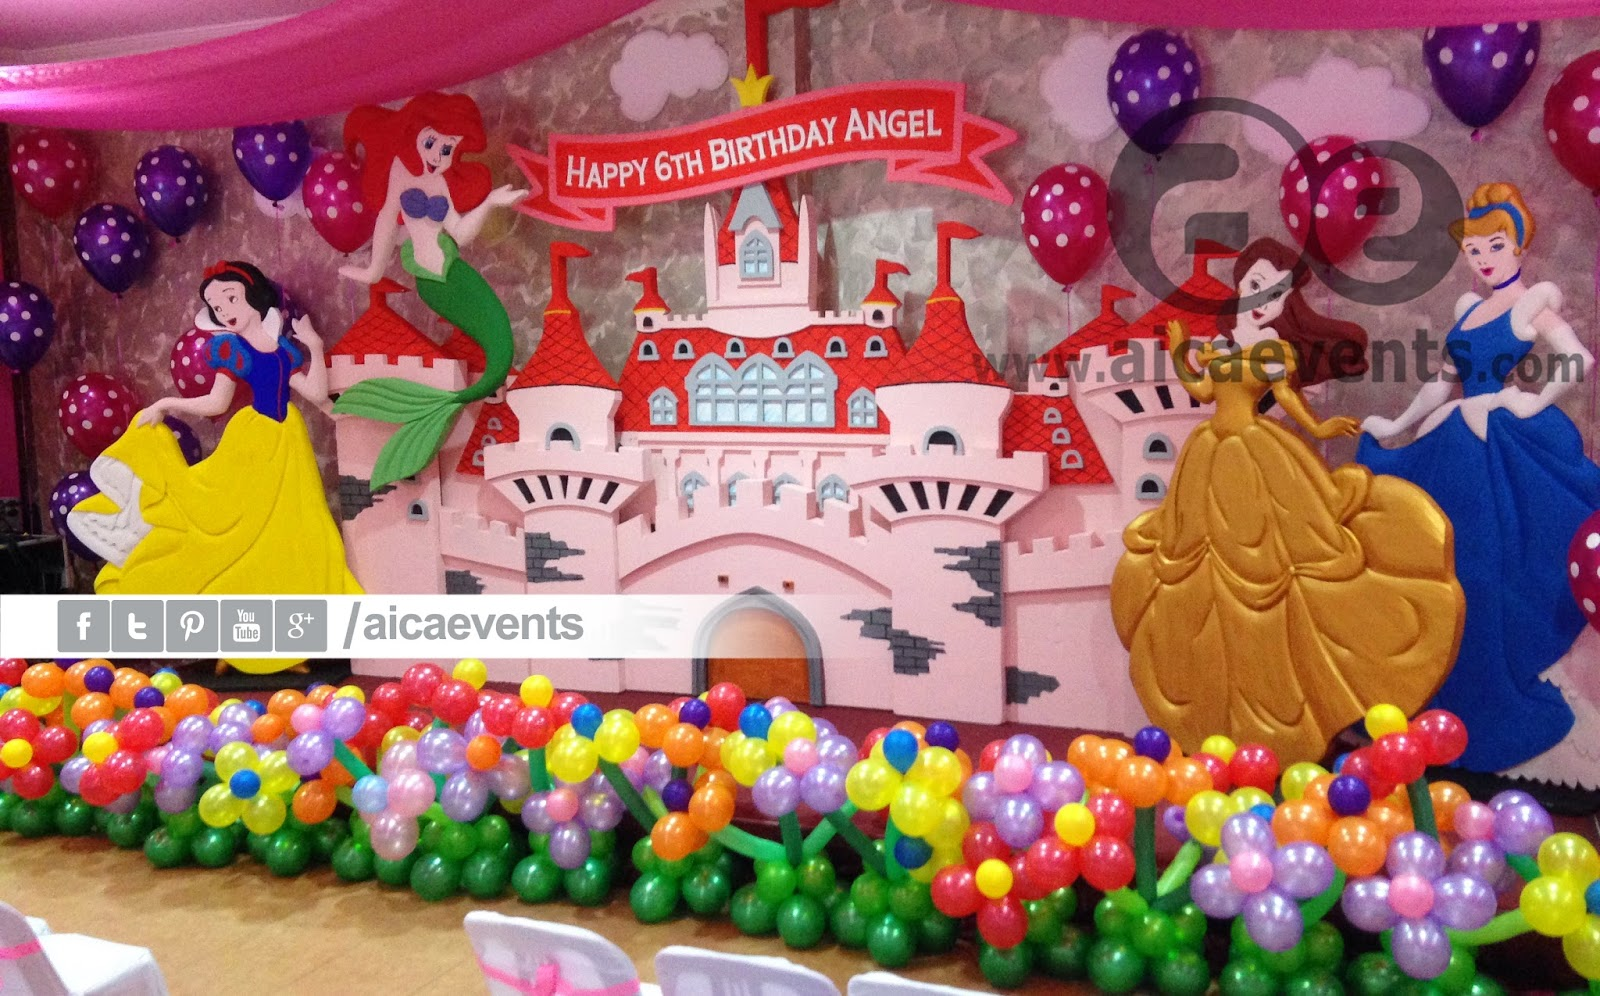 aicaevents: castle and princess theme decorations